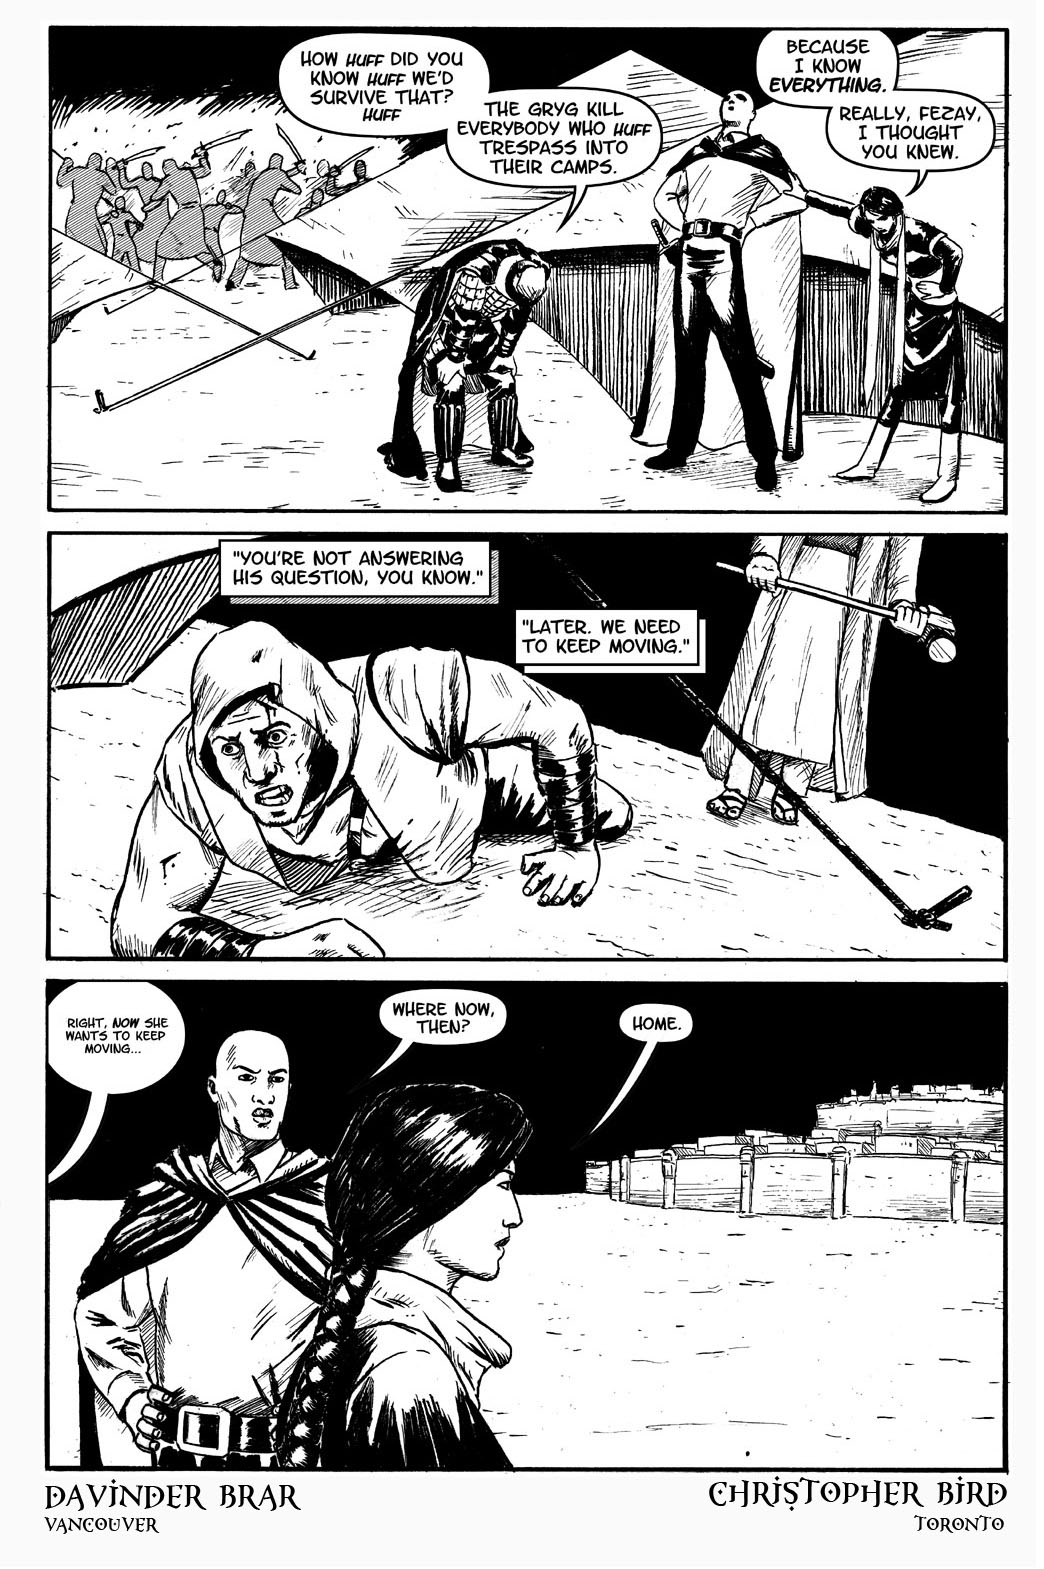 Book 4, page 24